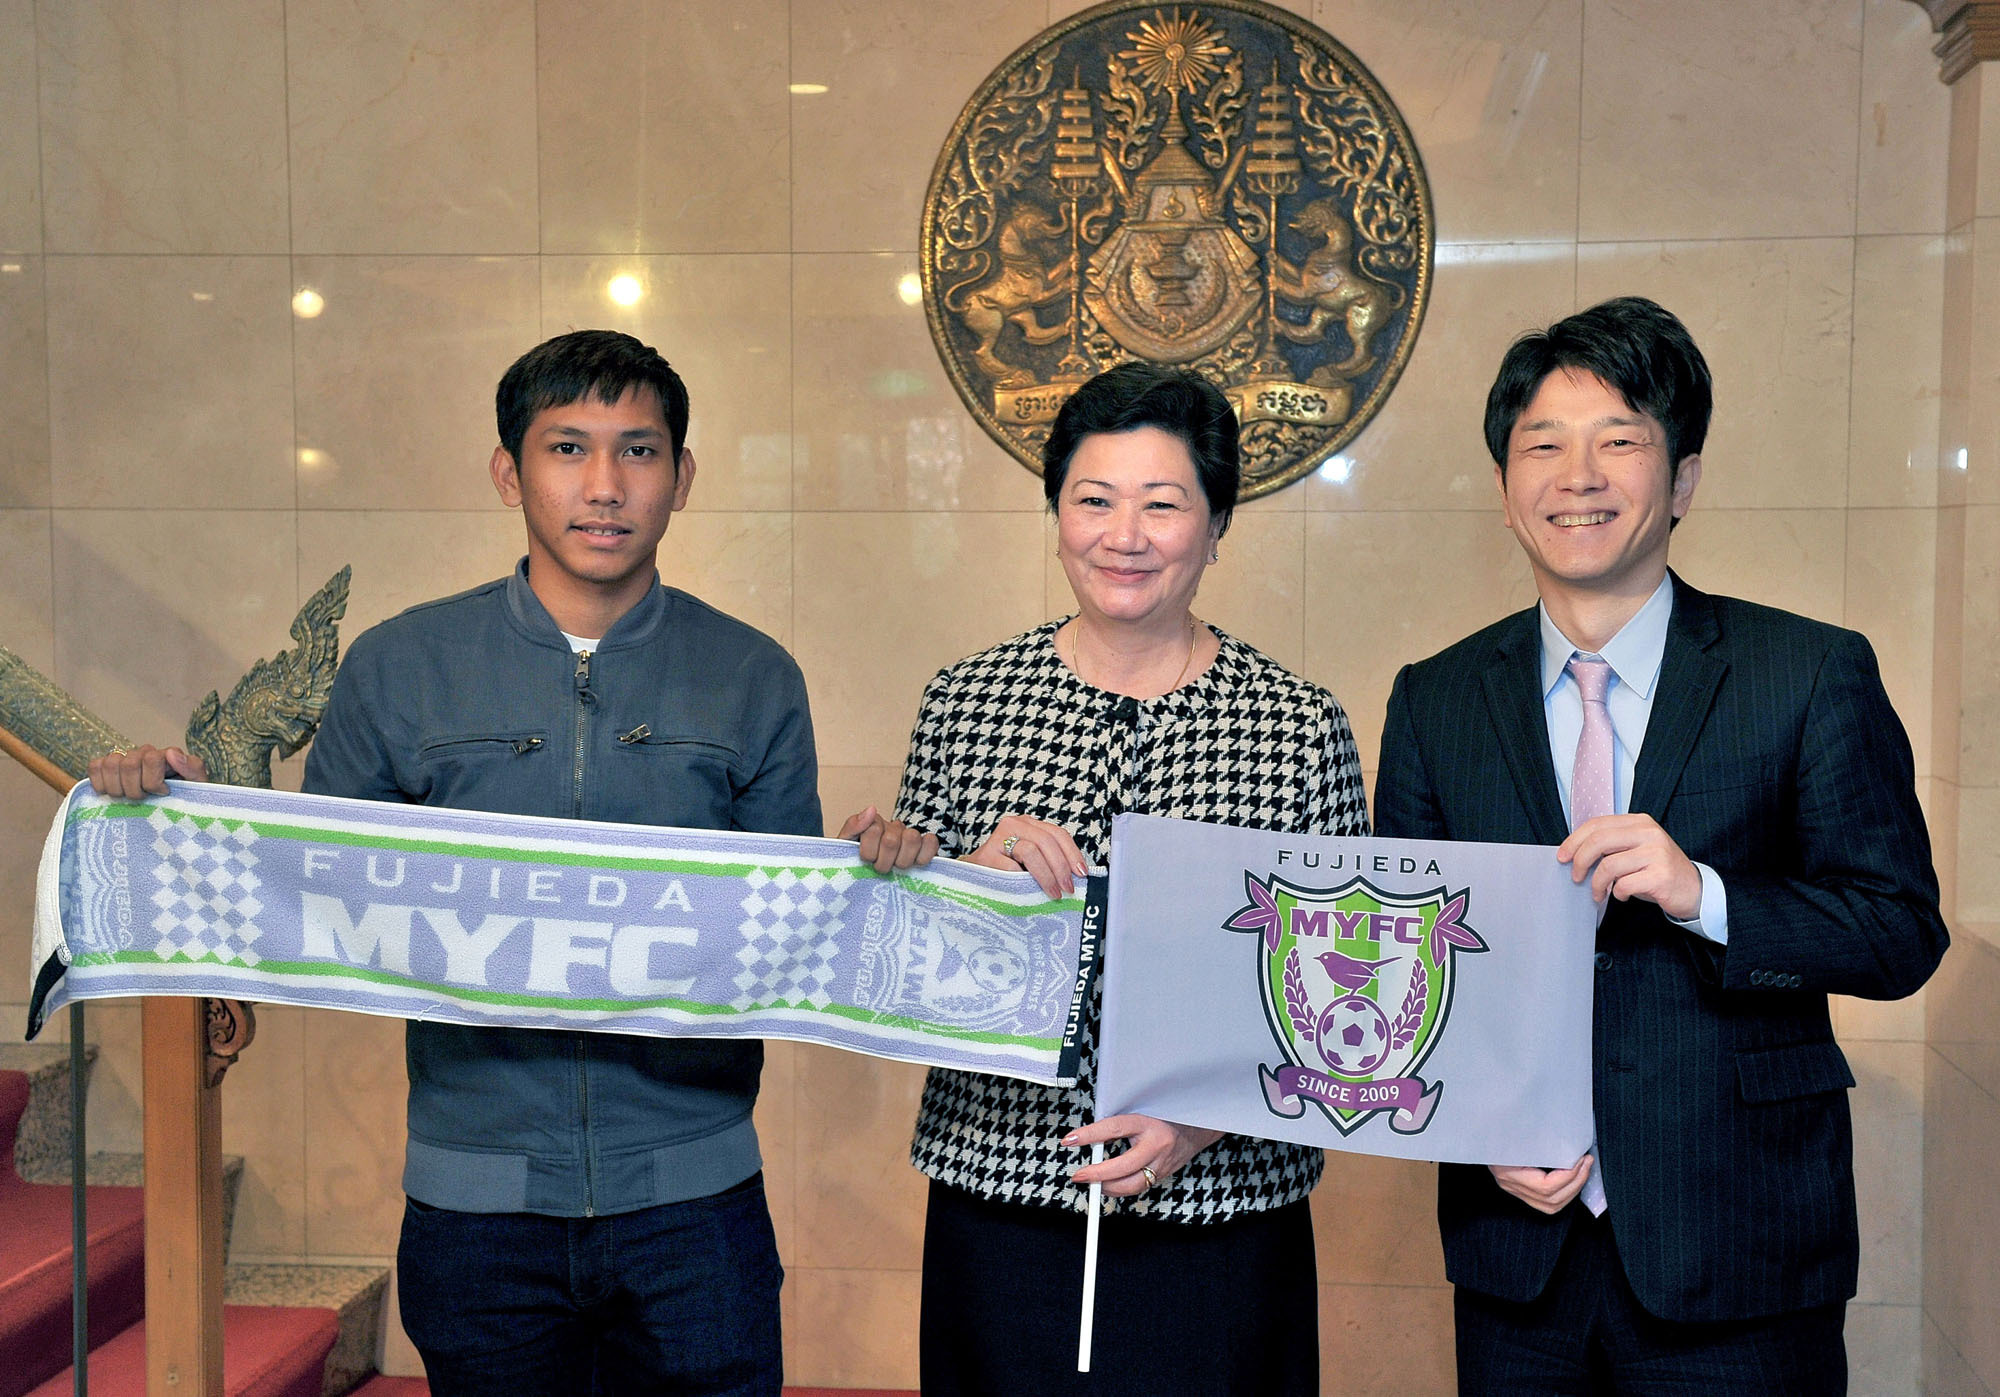 Cambodia's first J. League soccer player Chan Vathanaka (left) and Jun Koyama (right), president of Shizuoka Prefecture's Fujieda MYFC, pose during a visit with Cambodia's Ambassador Chea Kimtha at the embassy in Tokyo on Feb. 13. | YOSHIAKI MIURA